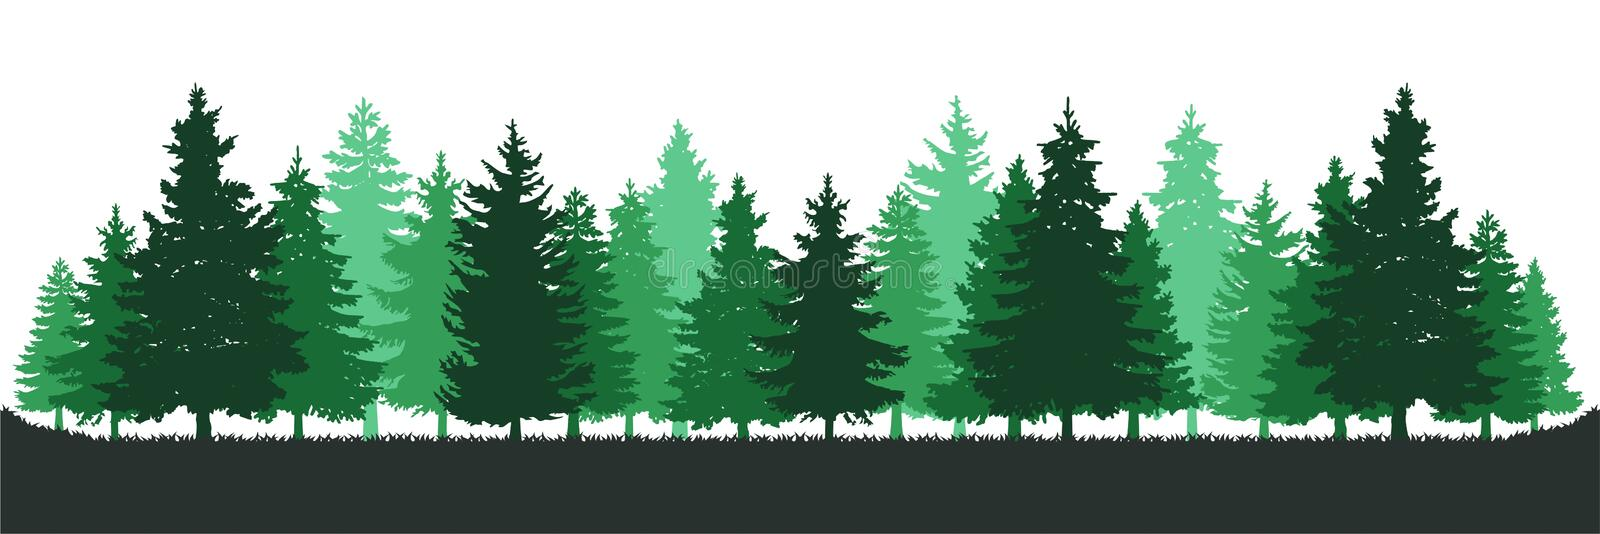 Árbol de pino verde Forest Environment libre illustration